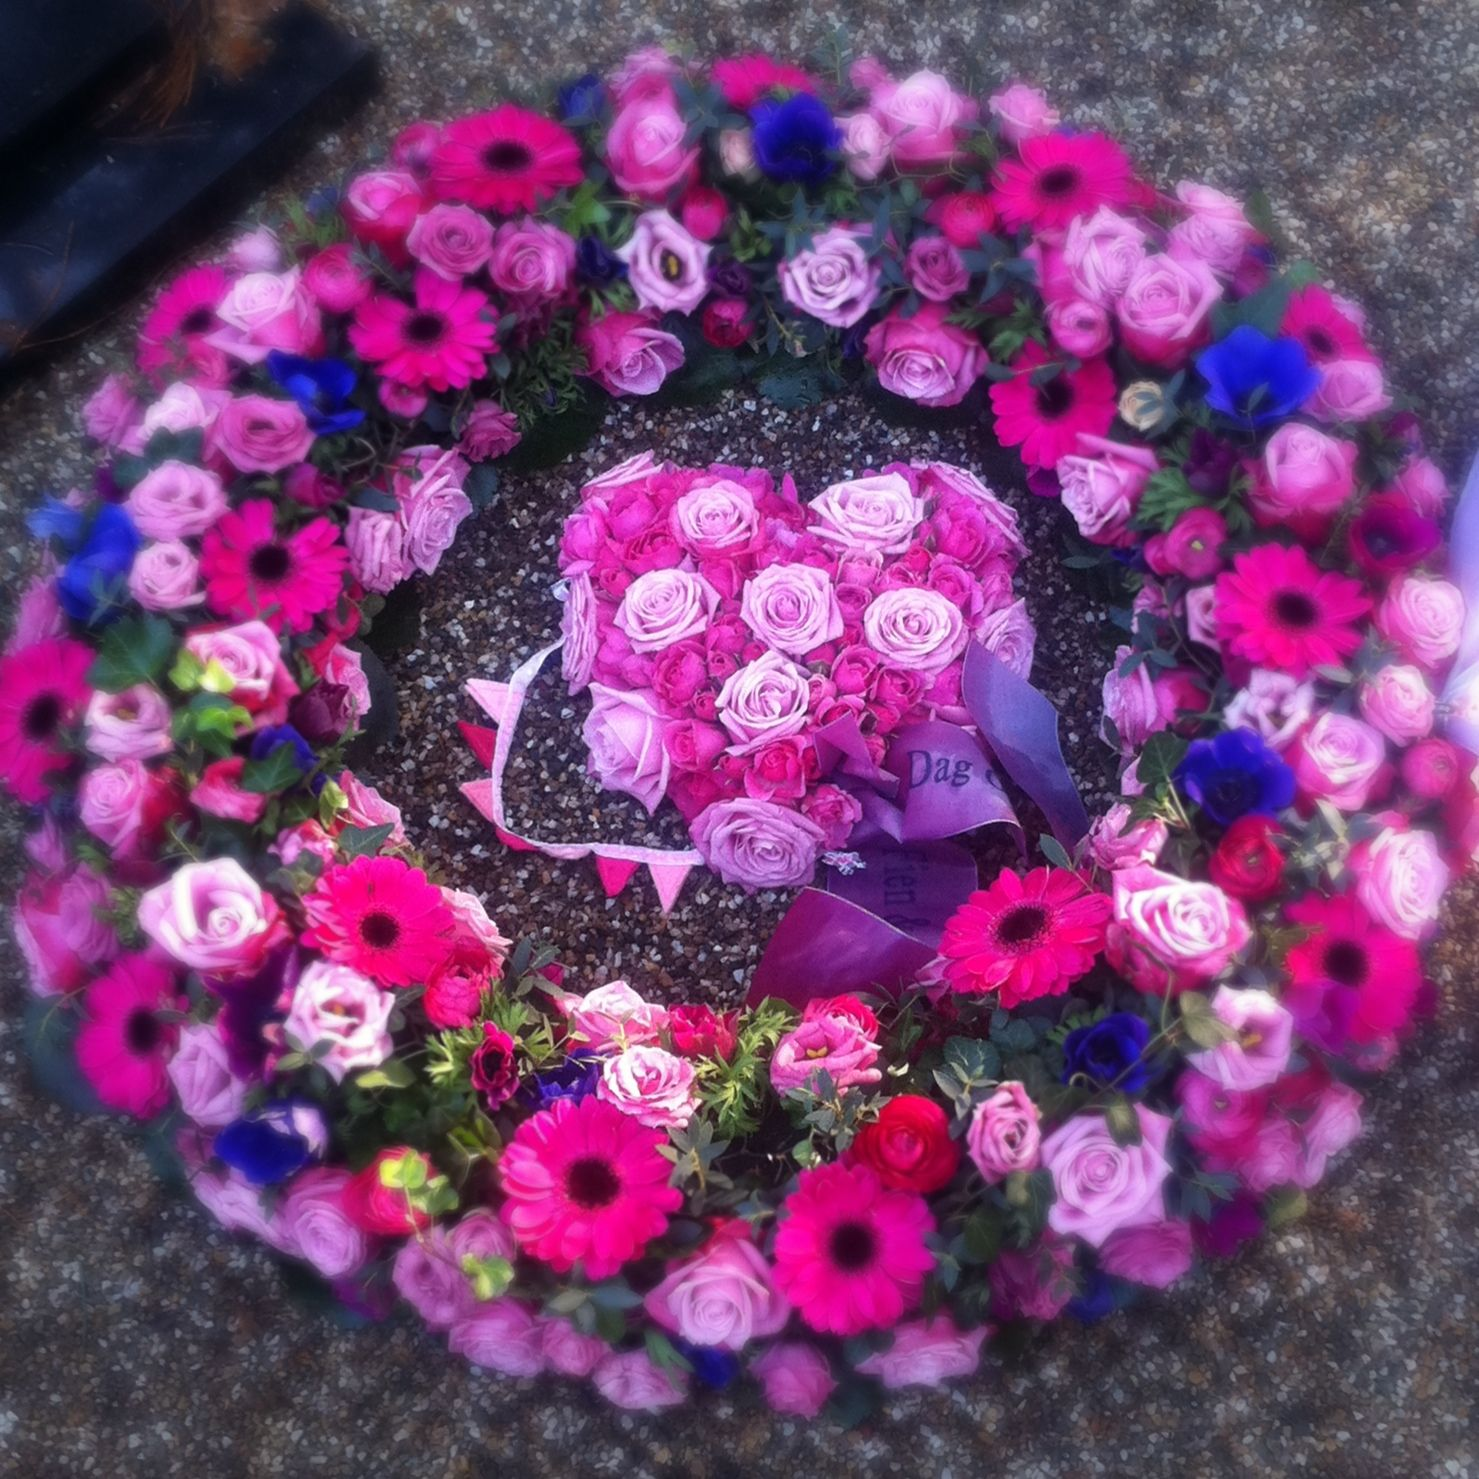 Funeral flowers bright pink purple blue wreath with pink flower funeral flowers bright pink purple blue wreath with pink flower heart izmirmasajfo Images